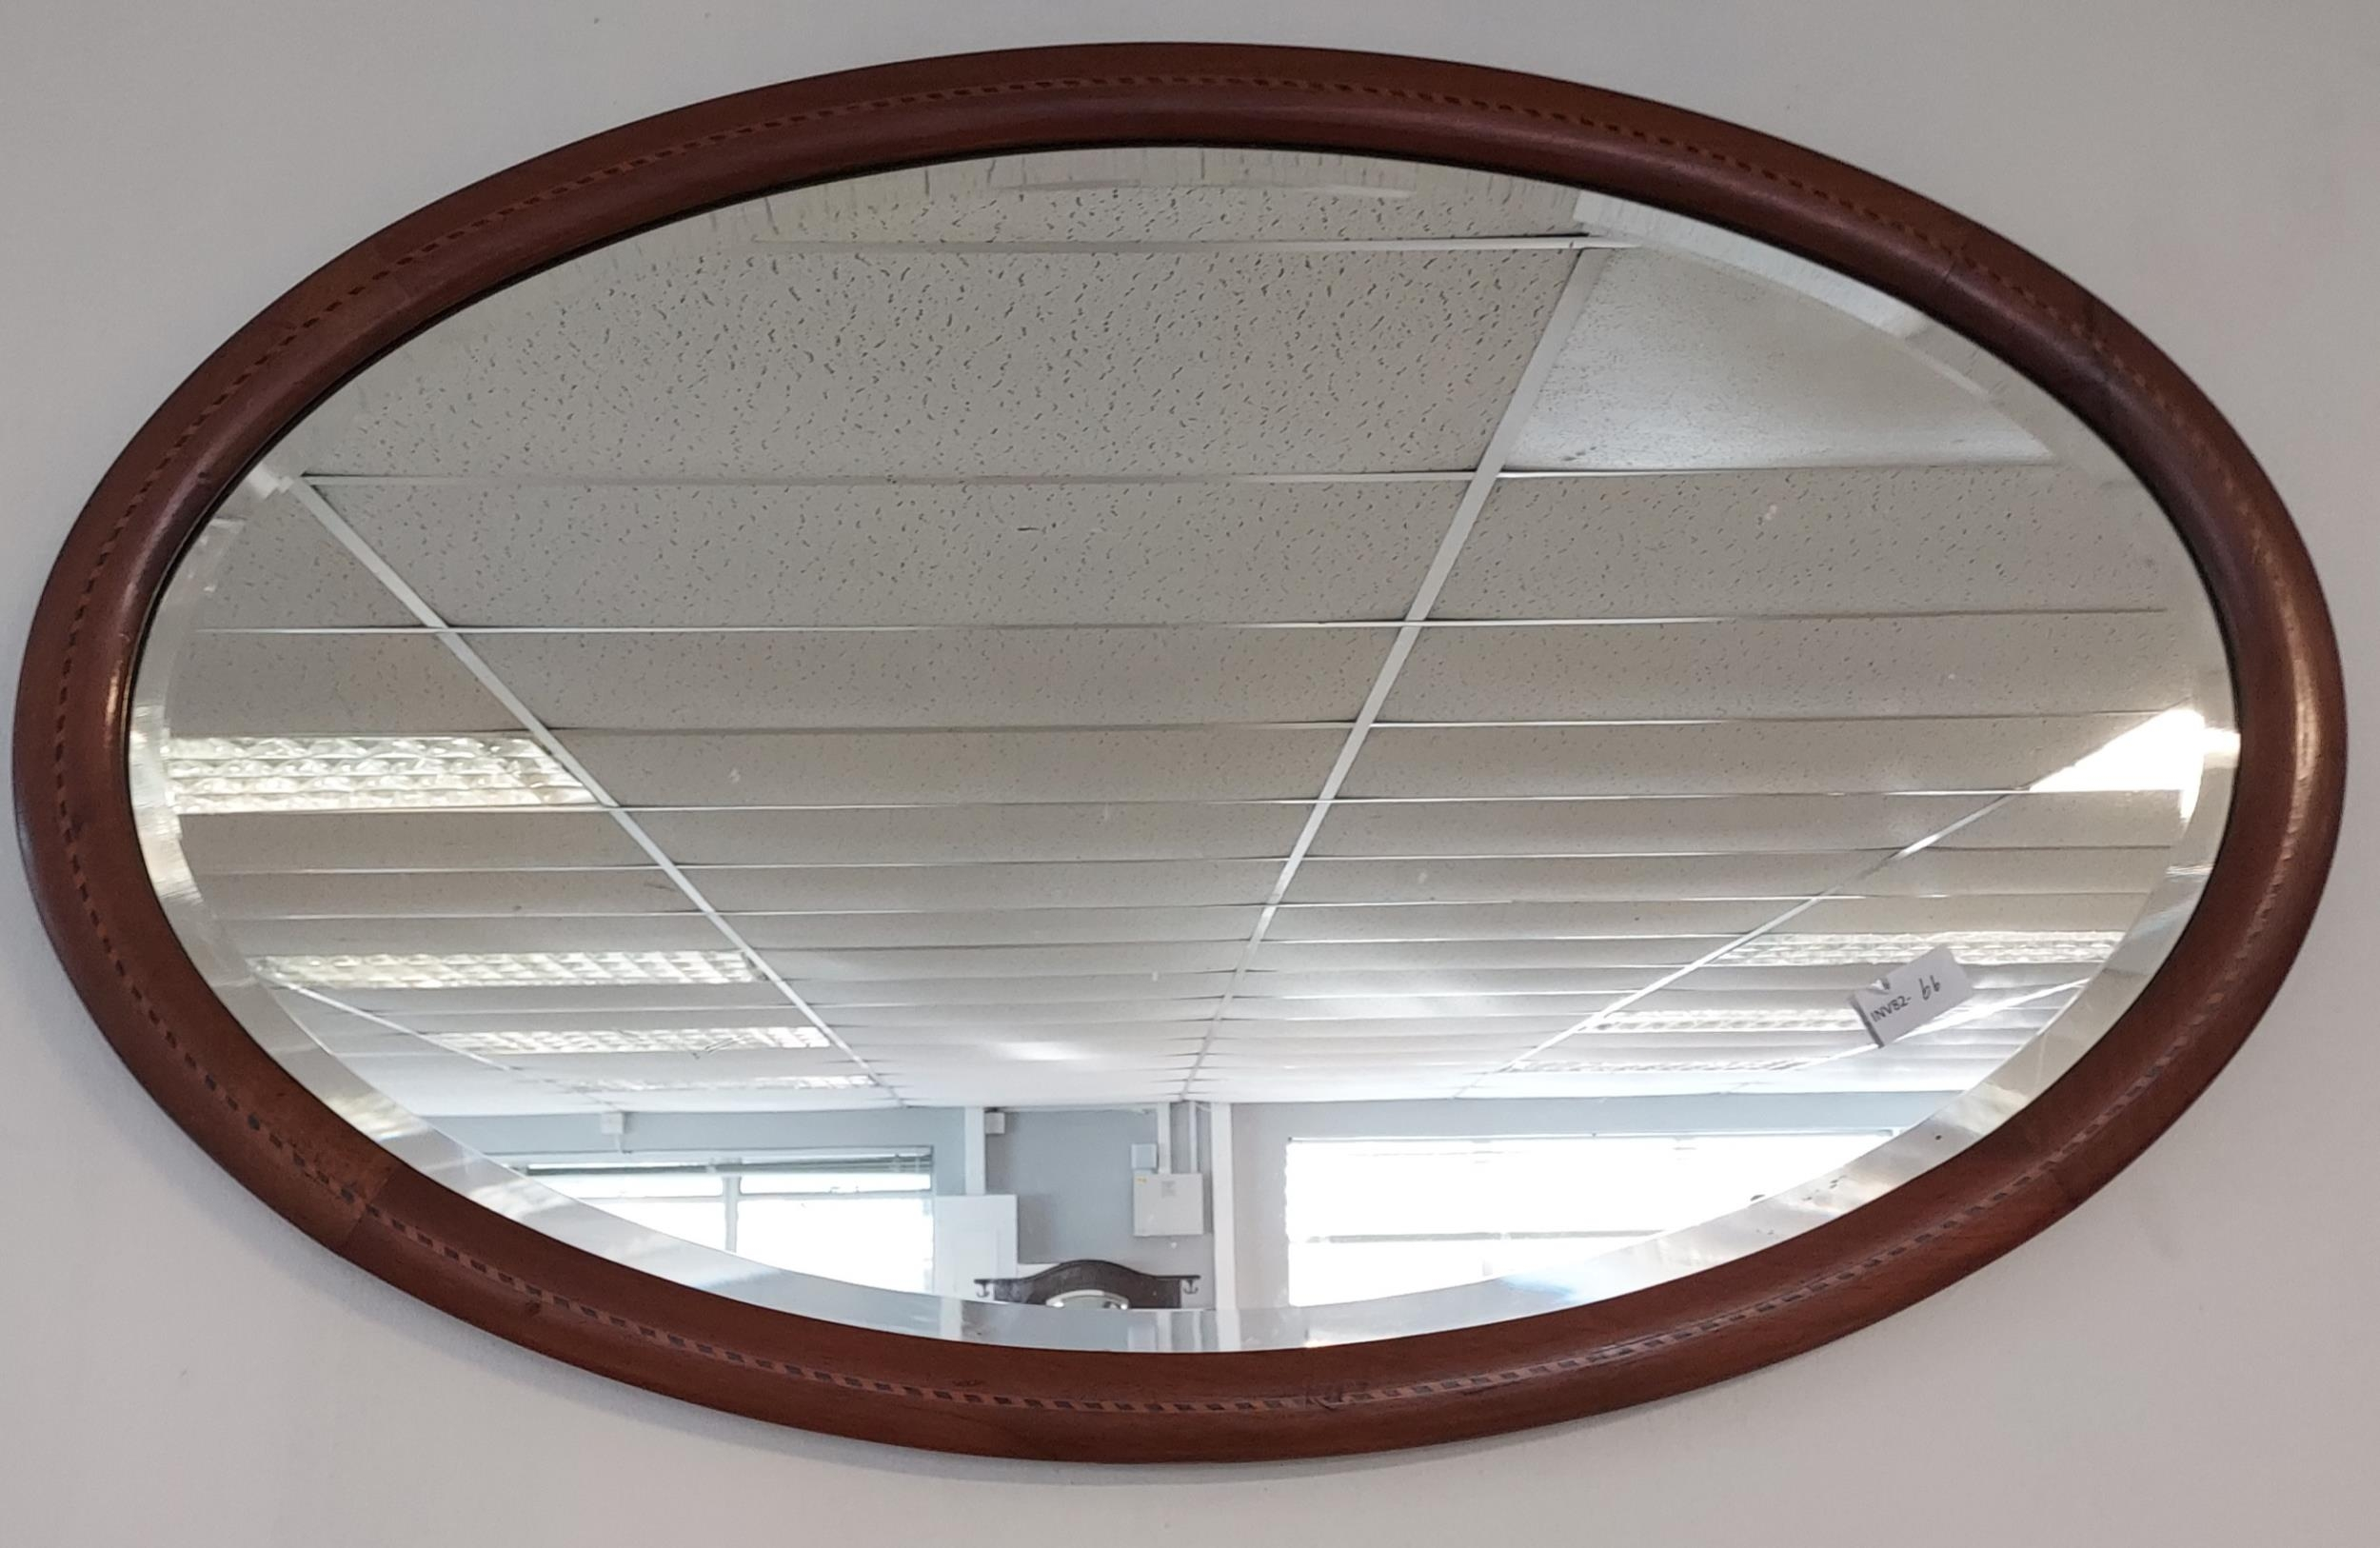 A 19th century oval mantle mirror.